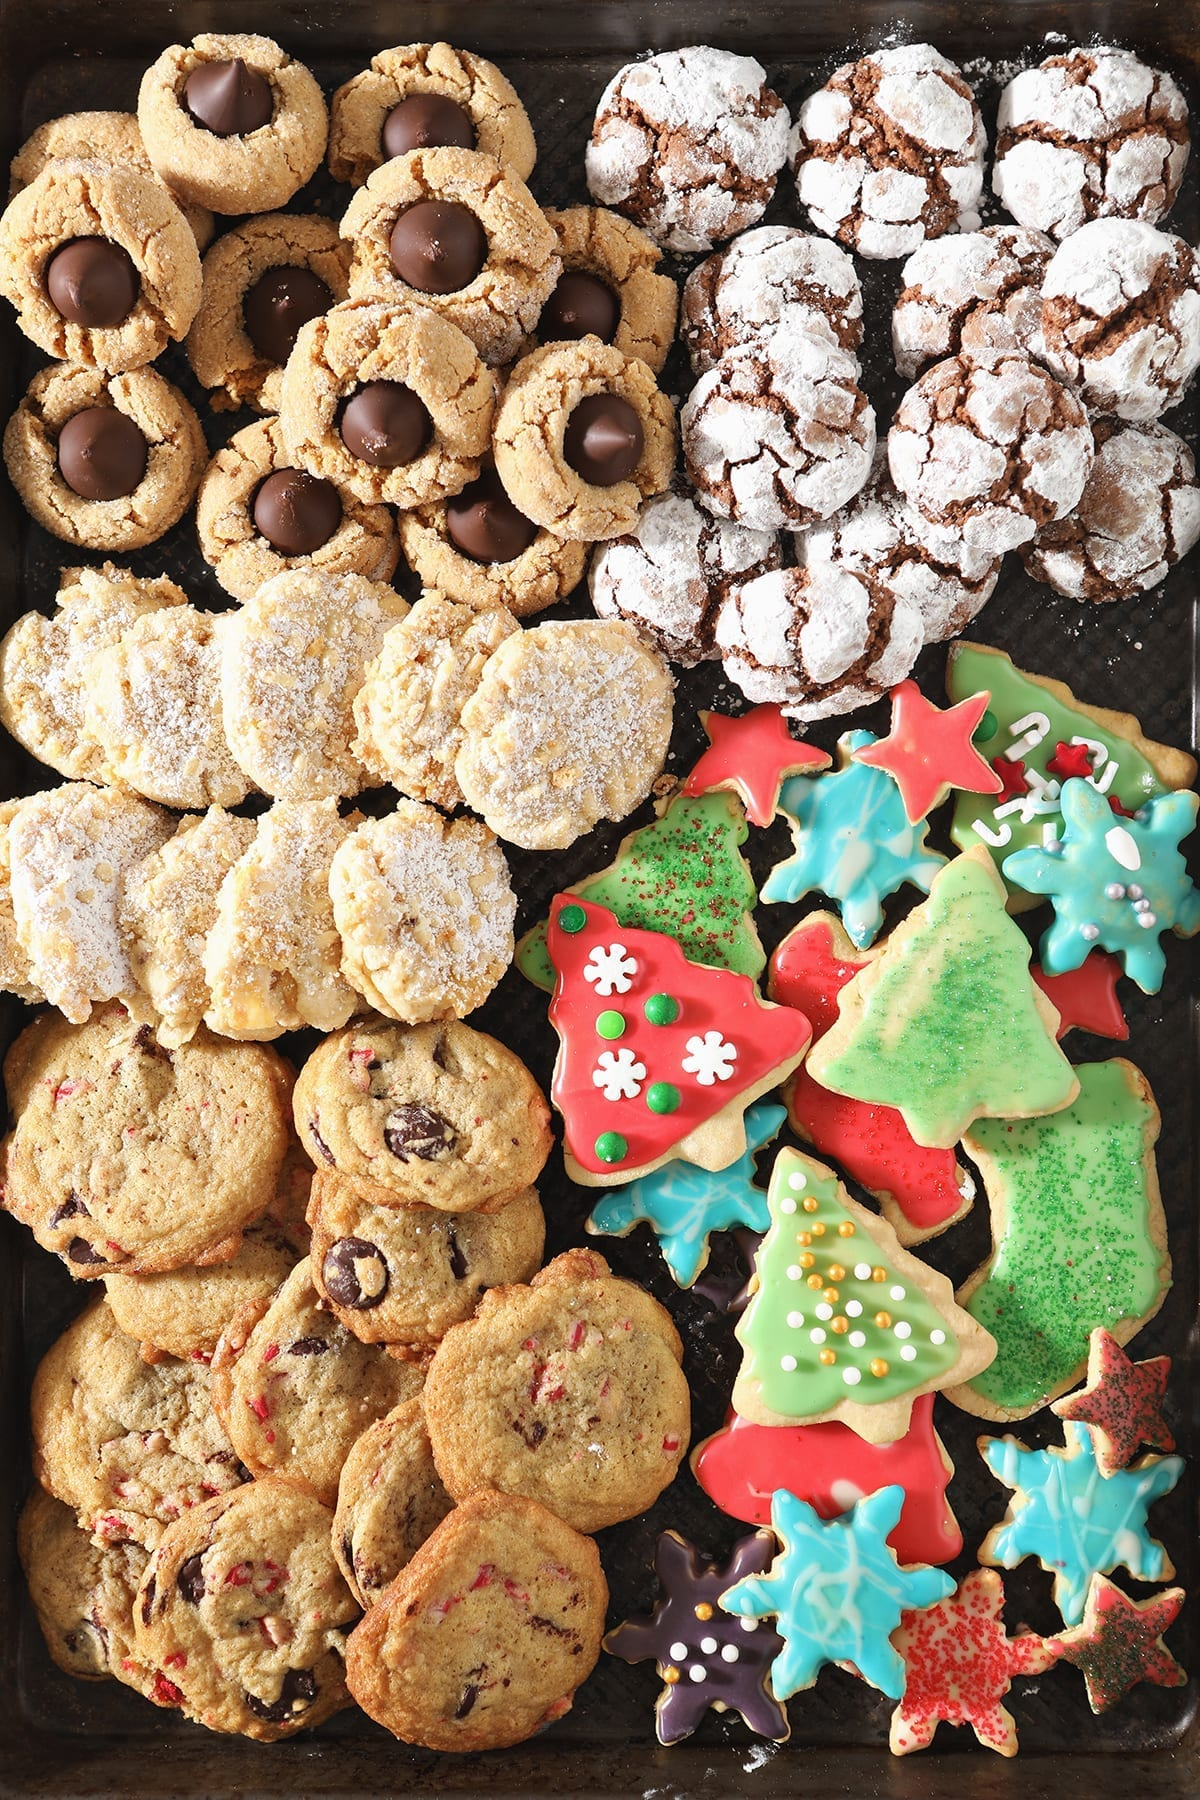 A tray of colorful holiday cookies including Christmas-shaped and decorated sugar cookies, potato chip cookies, crinkle cookies, peanut blossom cookies and more favorite holiday cookies from above